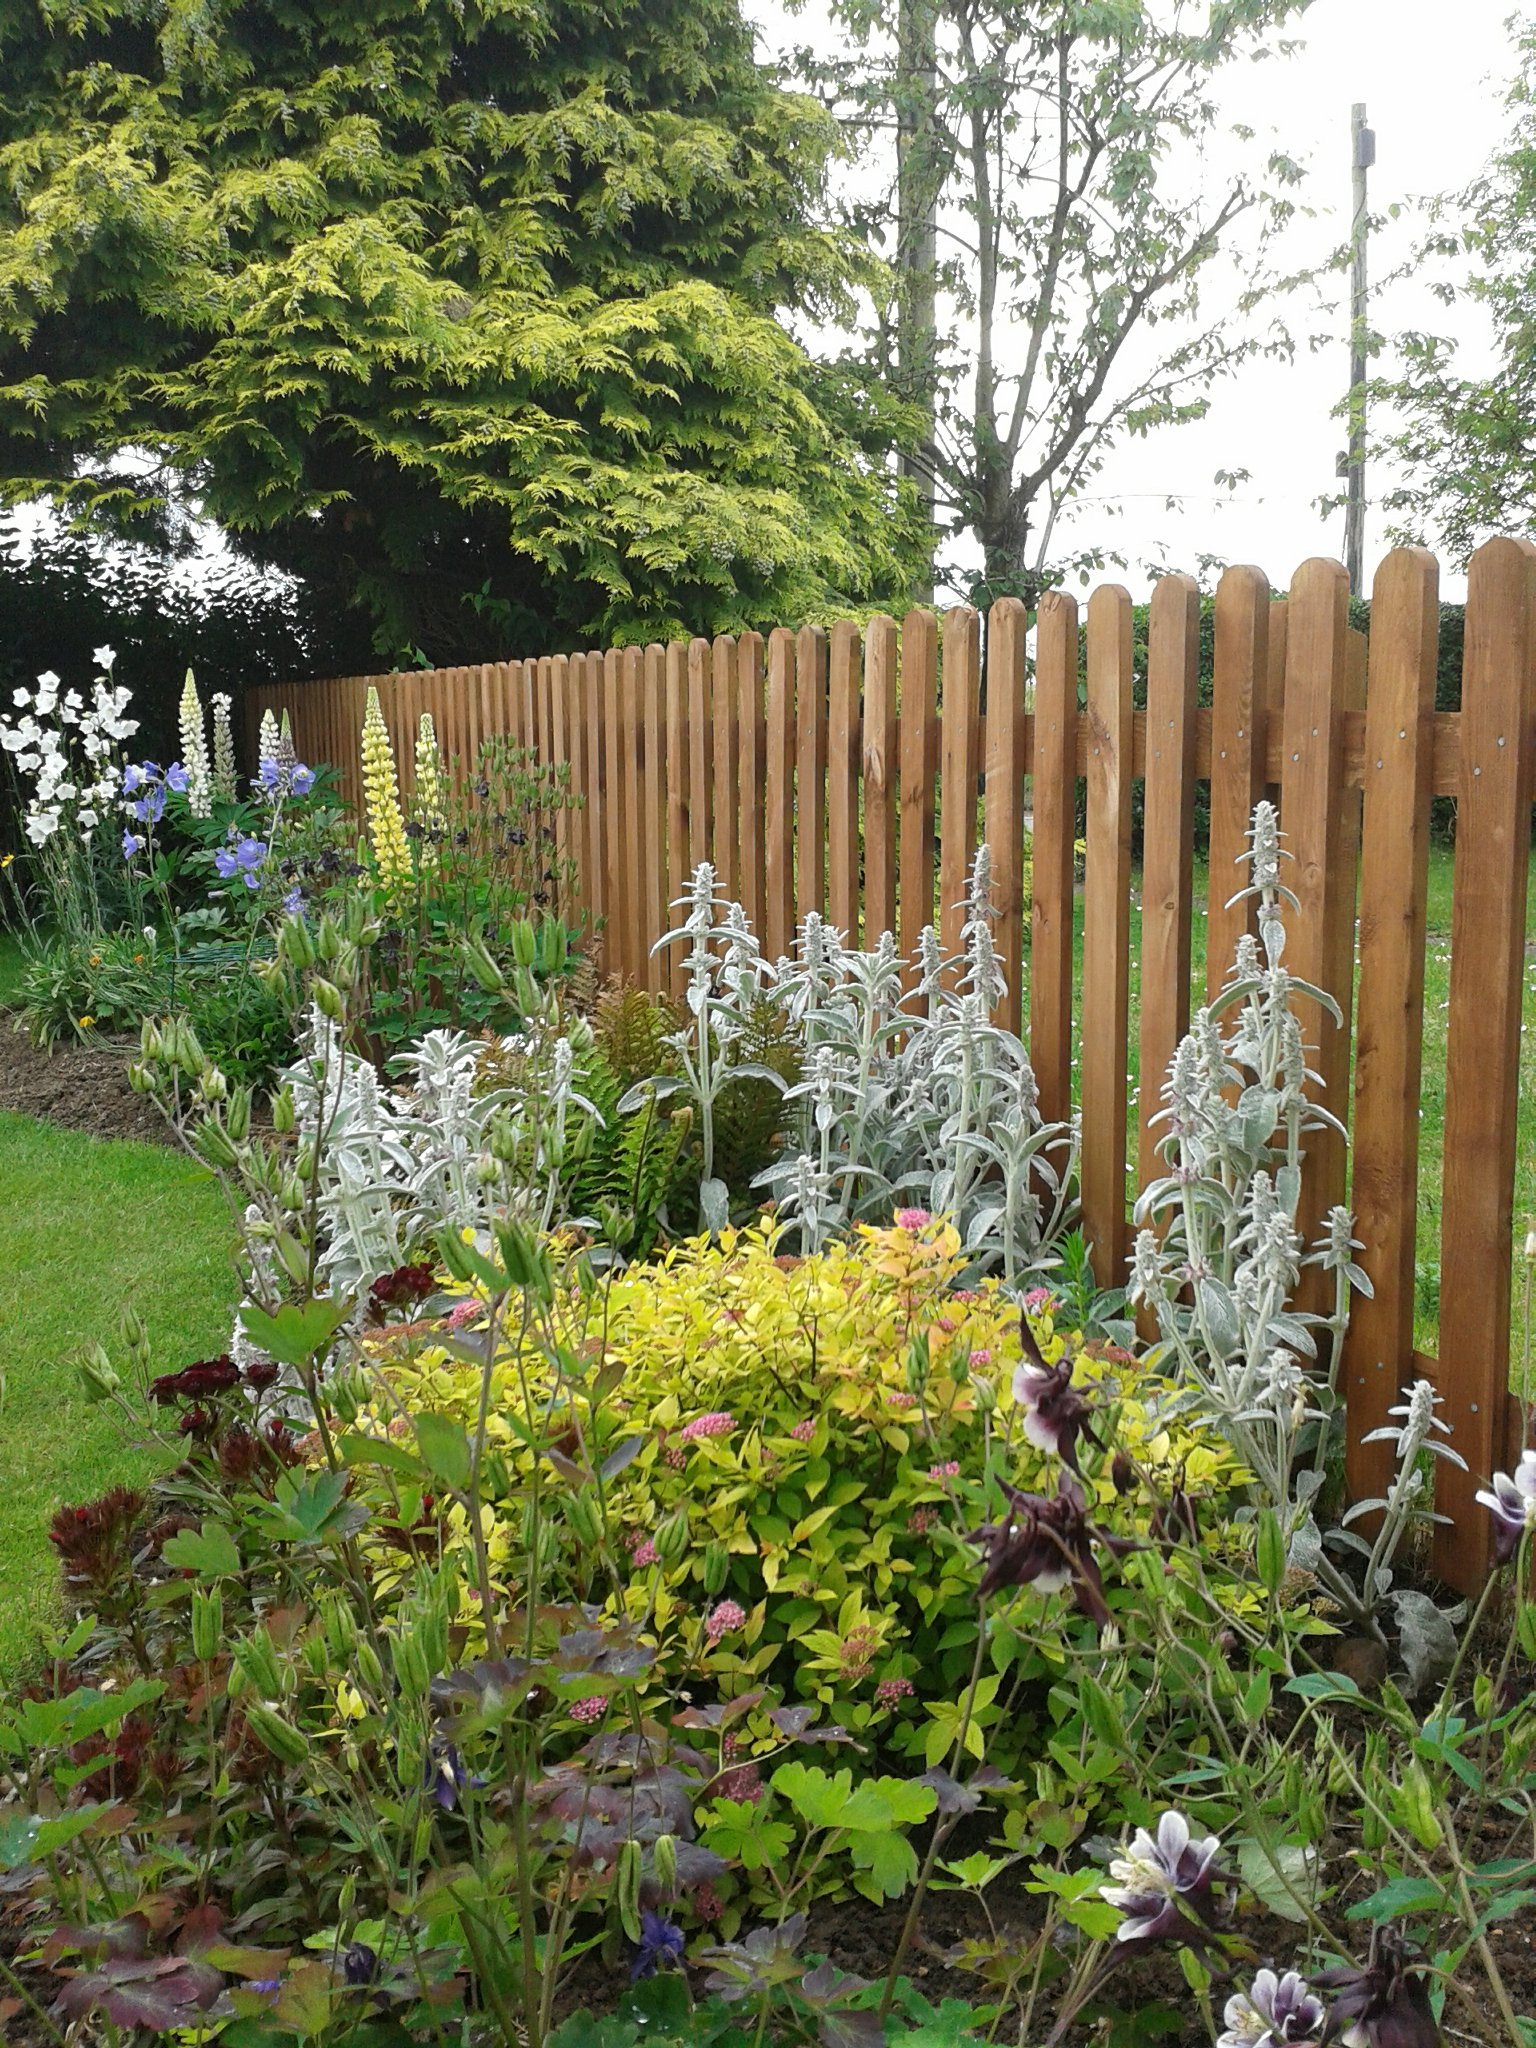 Round top planed Picket fencing finished in Barretine Summer tan